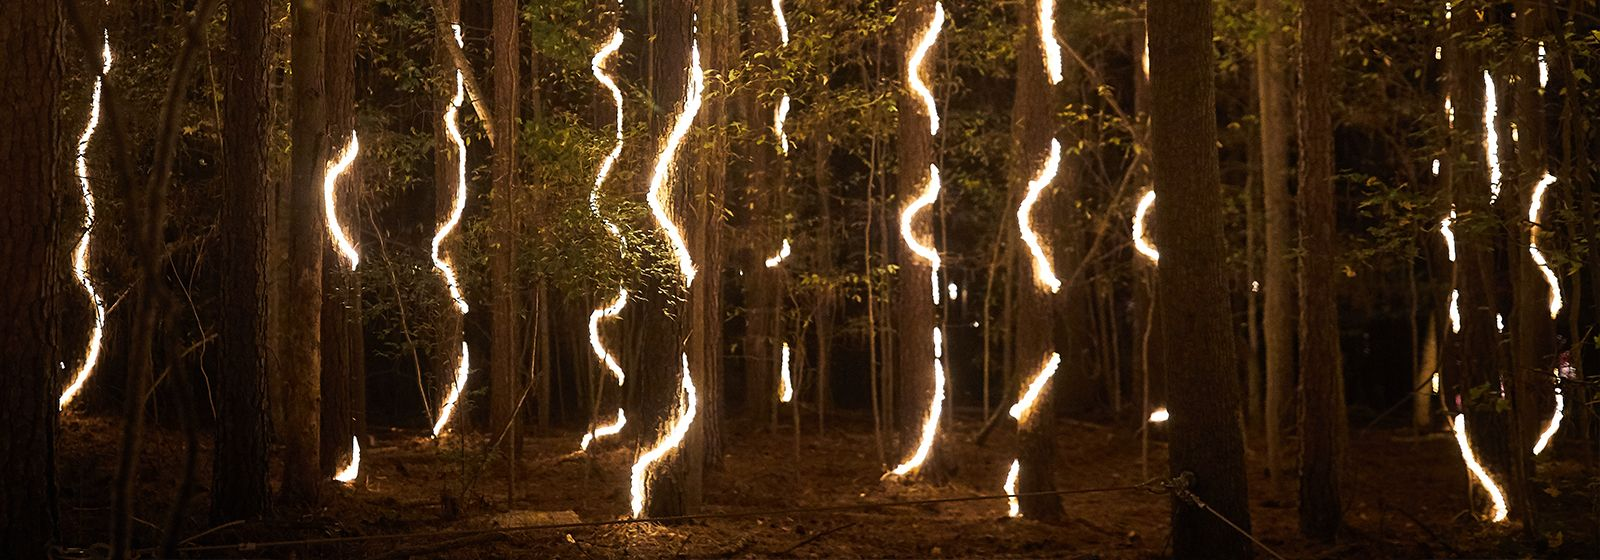 Walk through a forest of light at the U.S. National Whitewater Center